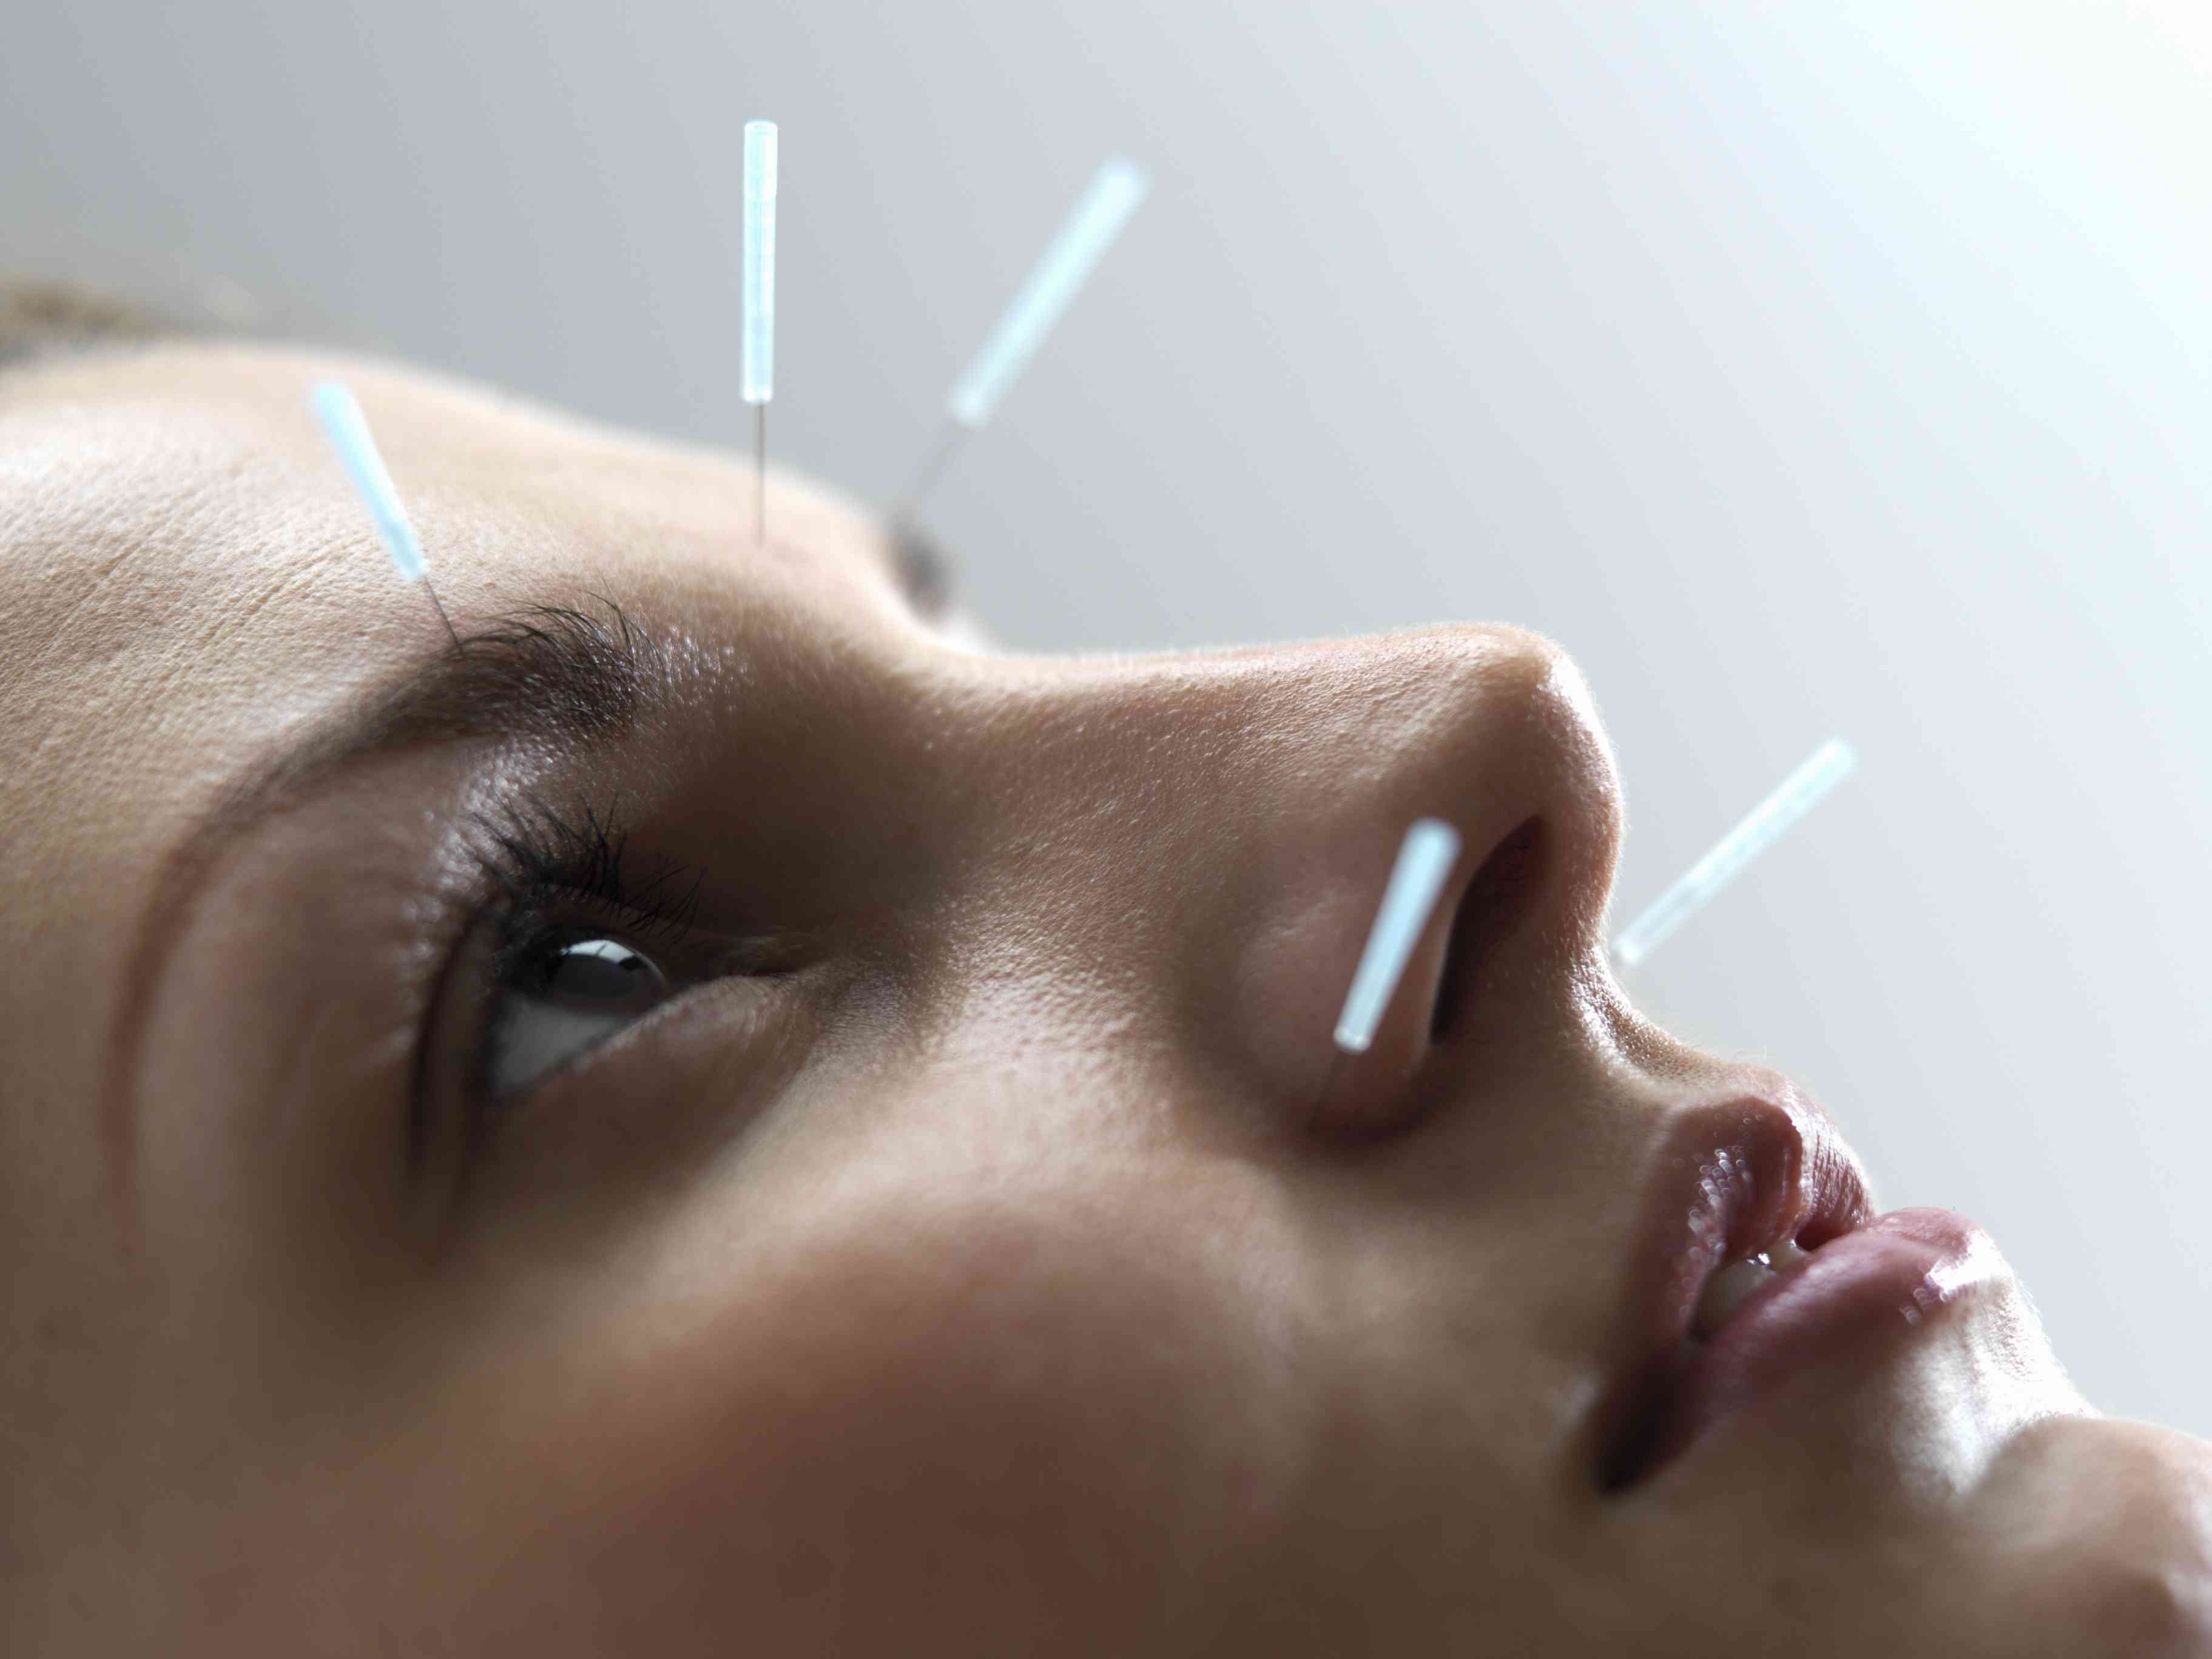 Woman undergoing acupuncture treatment, close-up